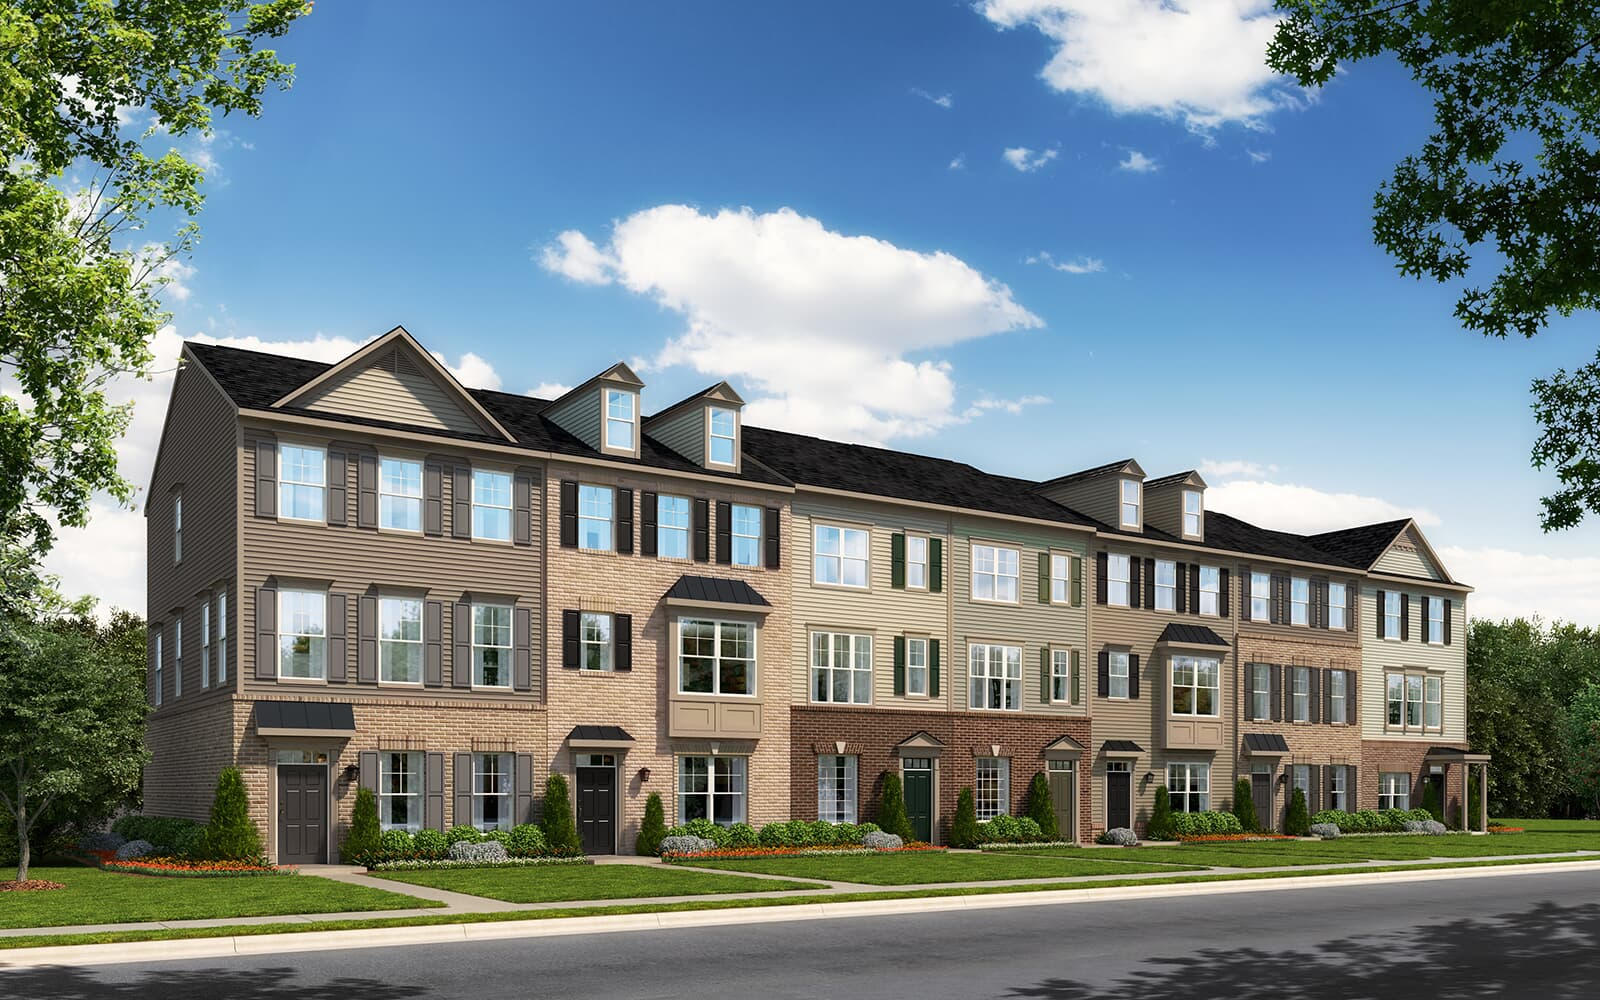 A rendering of the exterior of the Magnolia home design at Bradford s Landing in Silver Spring MD